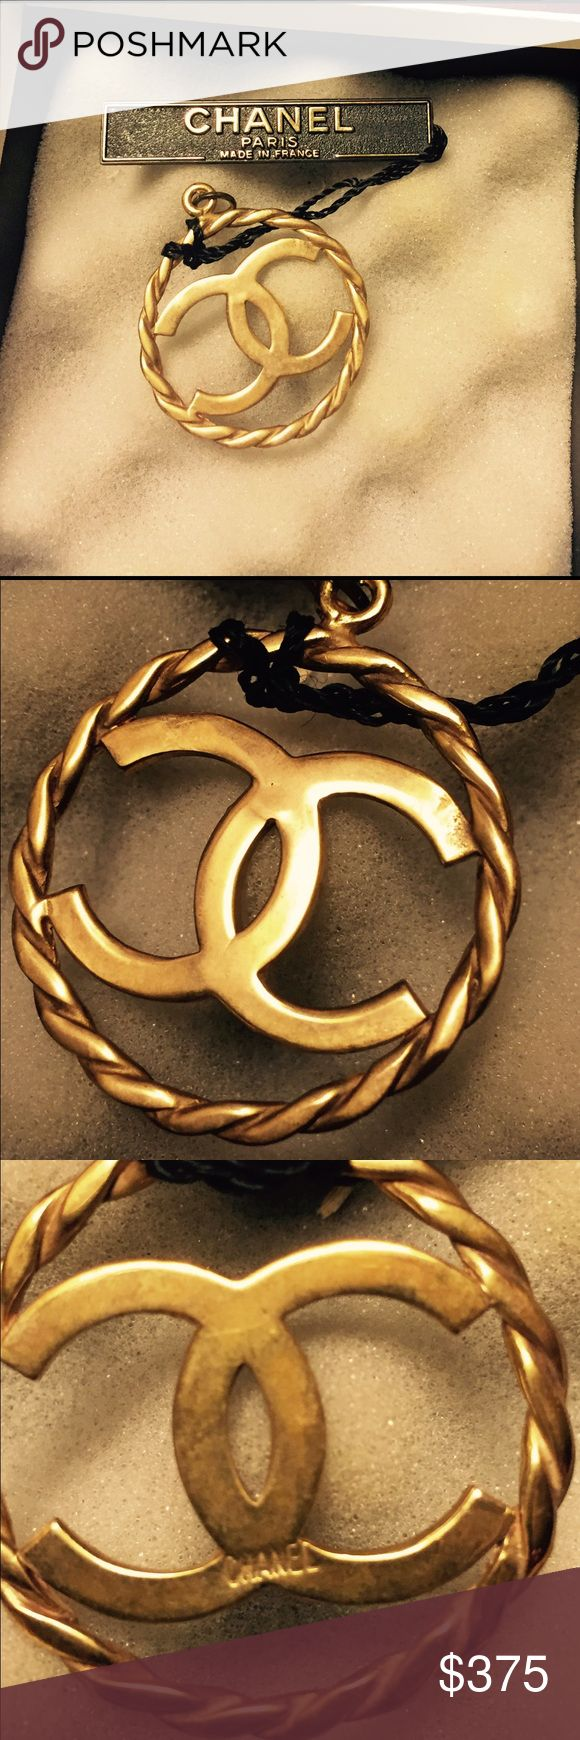 Lovingly worn Chanel pendant. Chic with anything. Lovingly worn Gold tone Chanel pendant. Comes in Chanel box. This refined pendant makes any outfit look chic. There are some minor scratches on the back of pendant which is stamped Chanel. In preloved condition. CHANEL Jewelry Necklaces